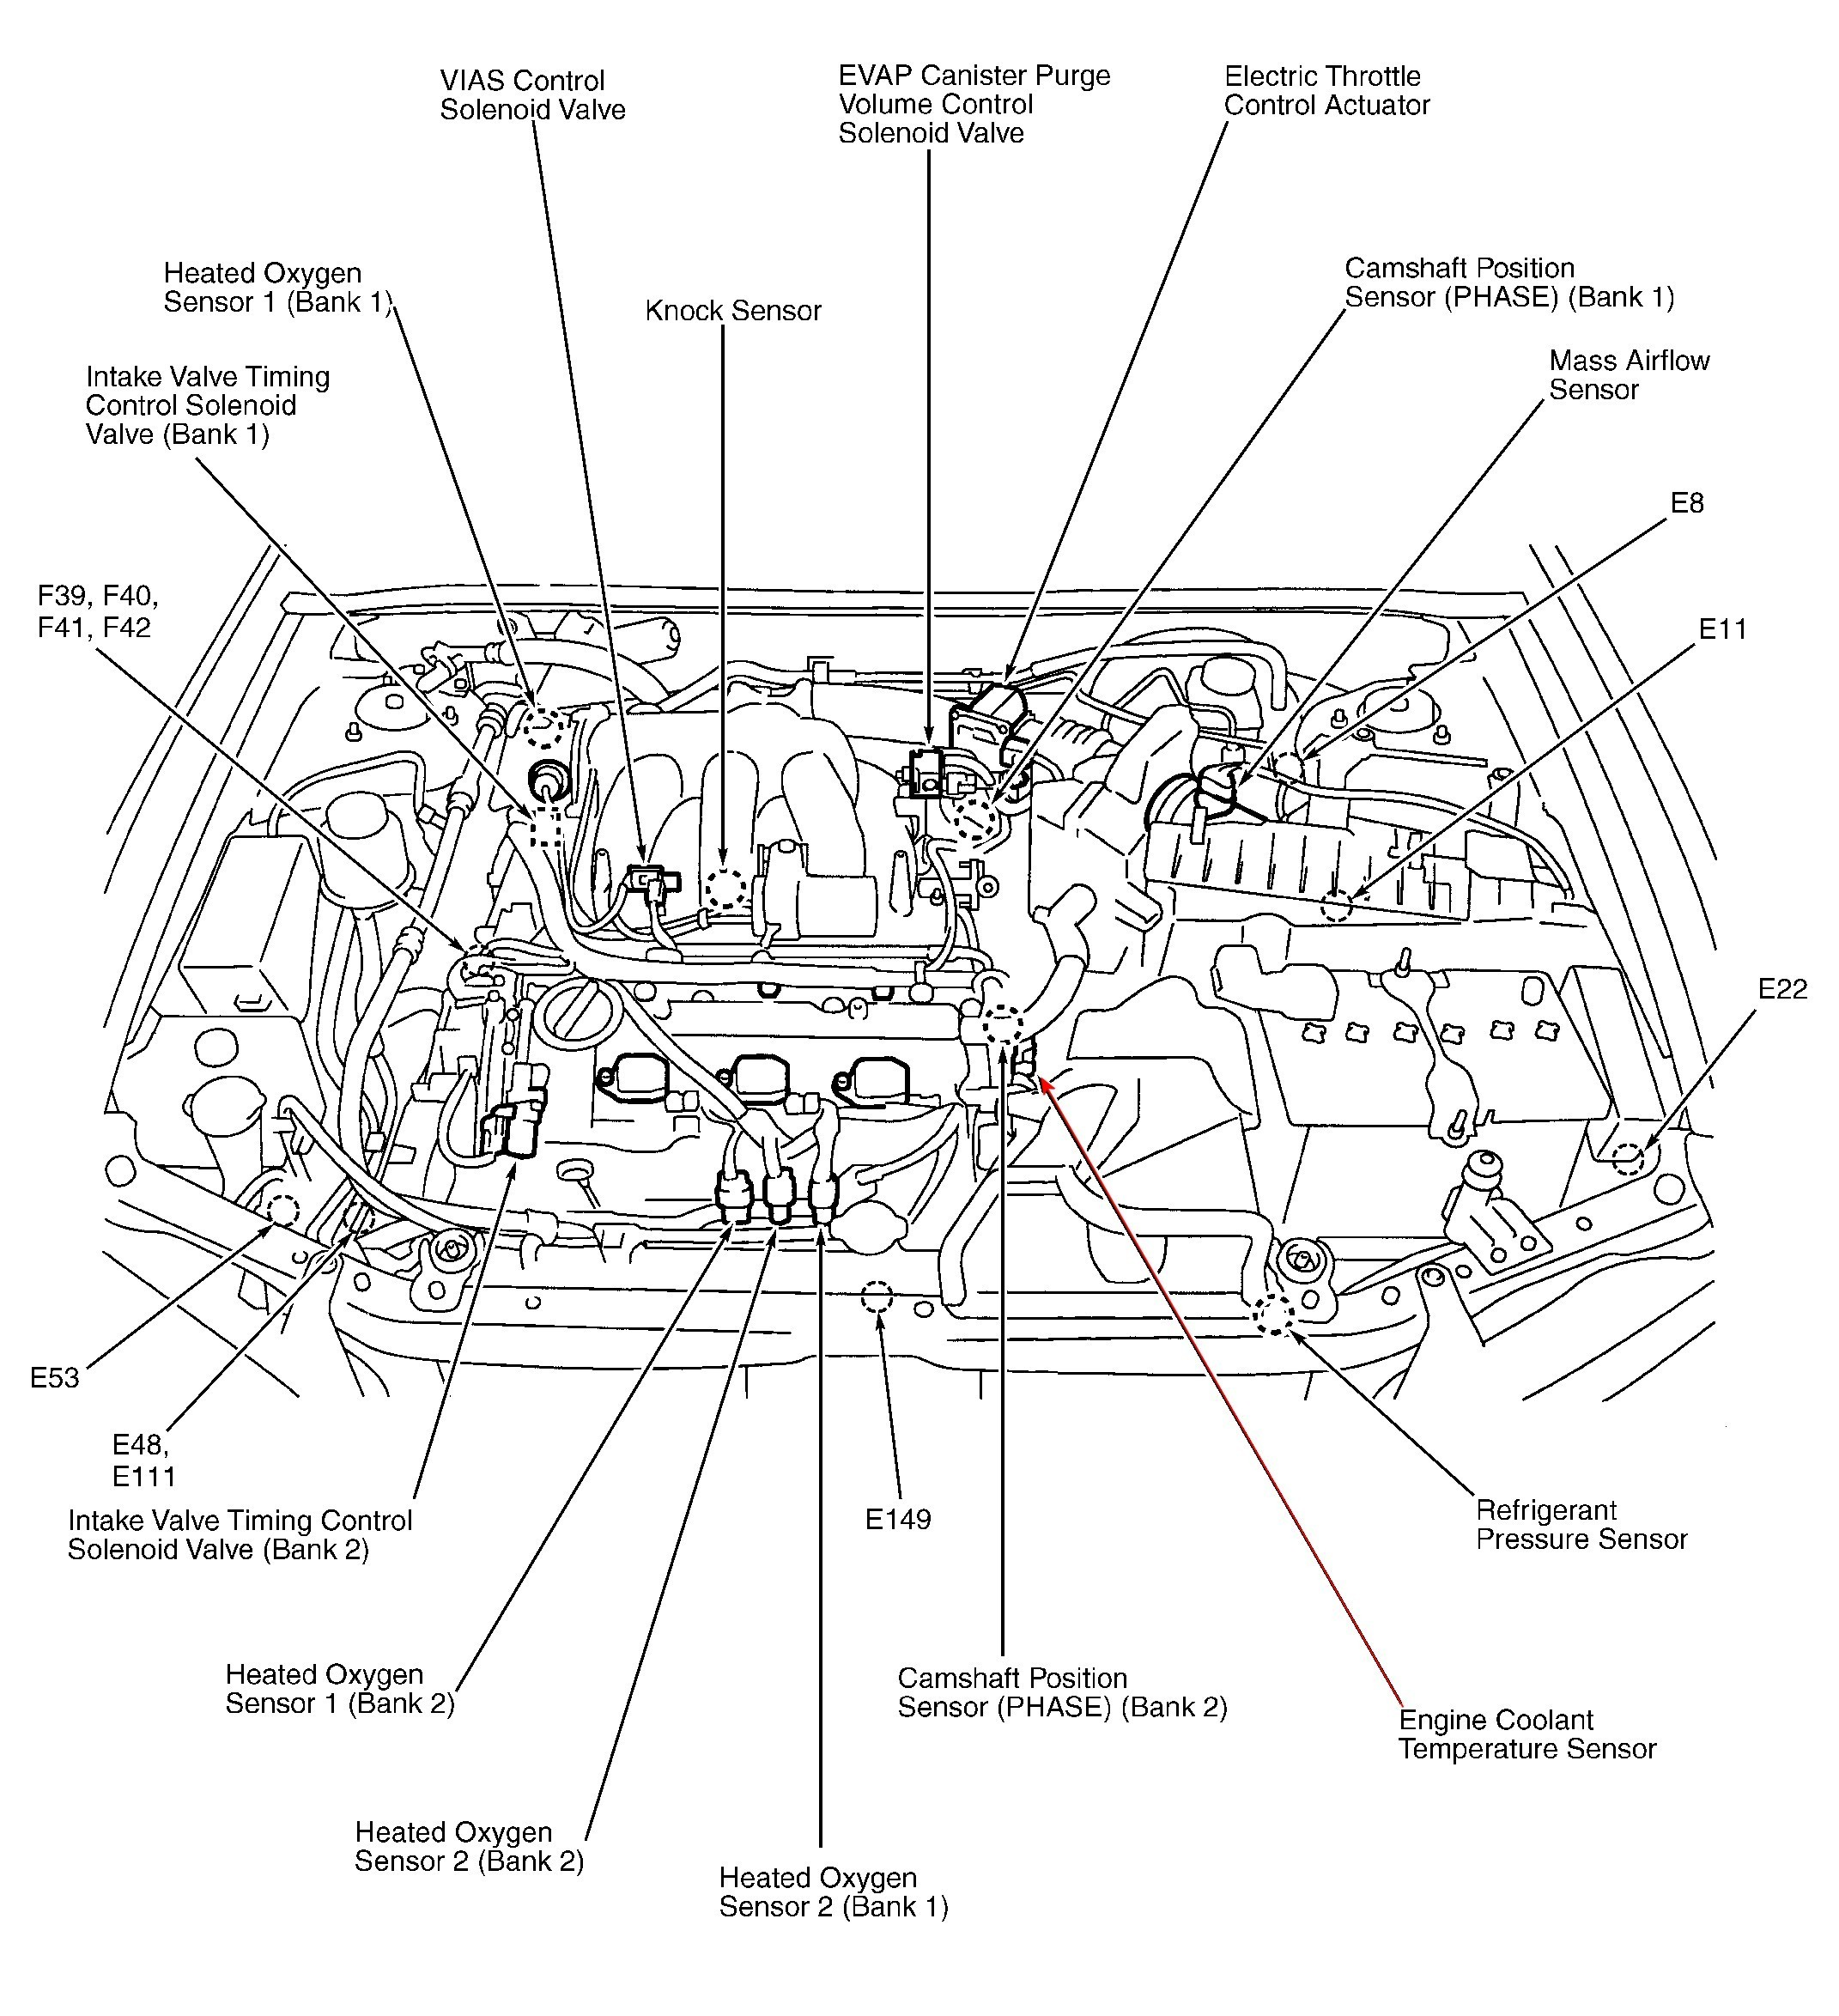 2005 Acura Mdx Parts Diagram Newmotorku Co: 2005 Acura Mdx Engine Diagram  At Galaxydownloads.